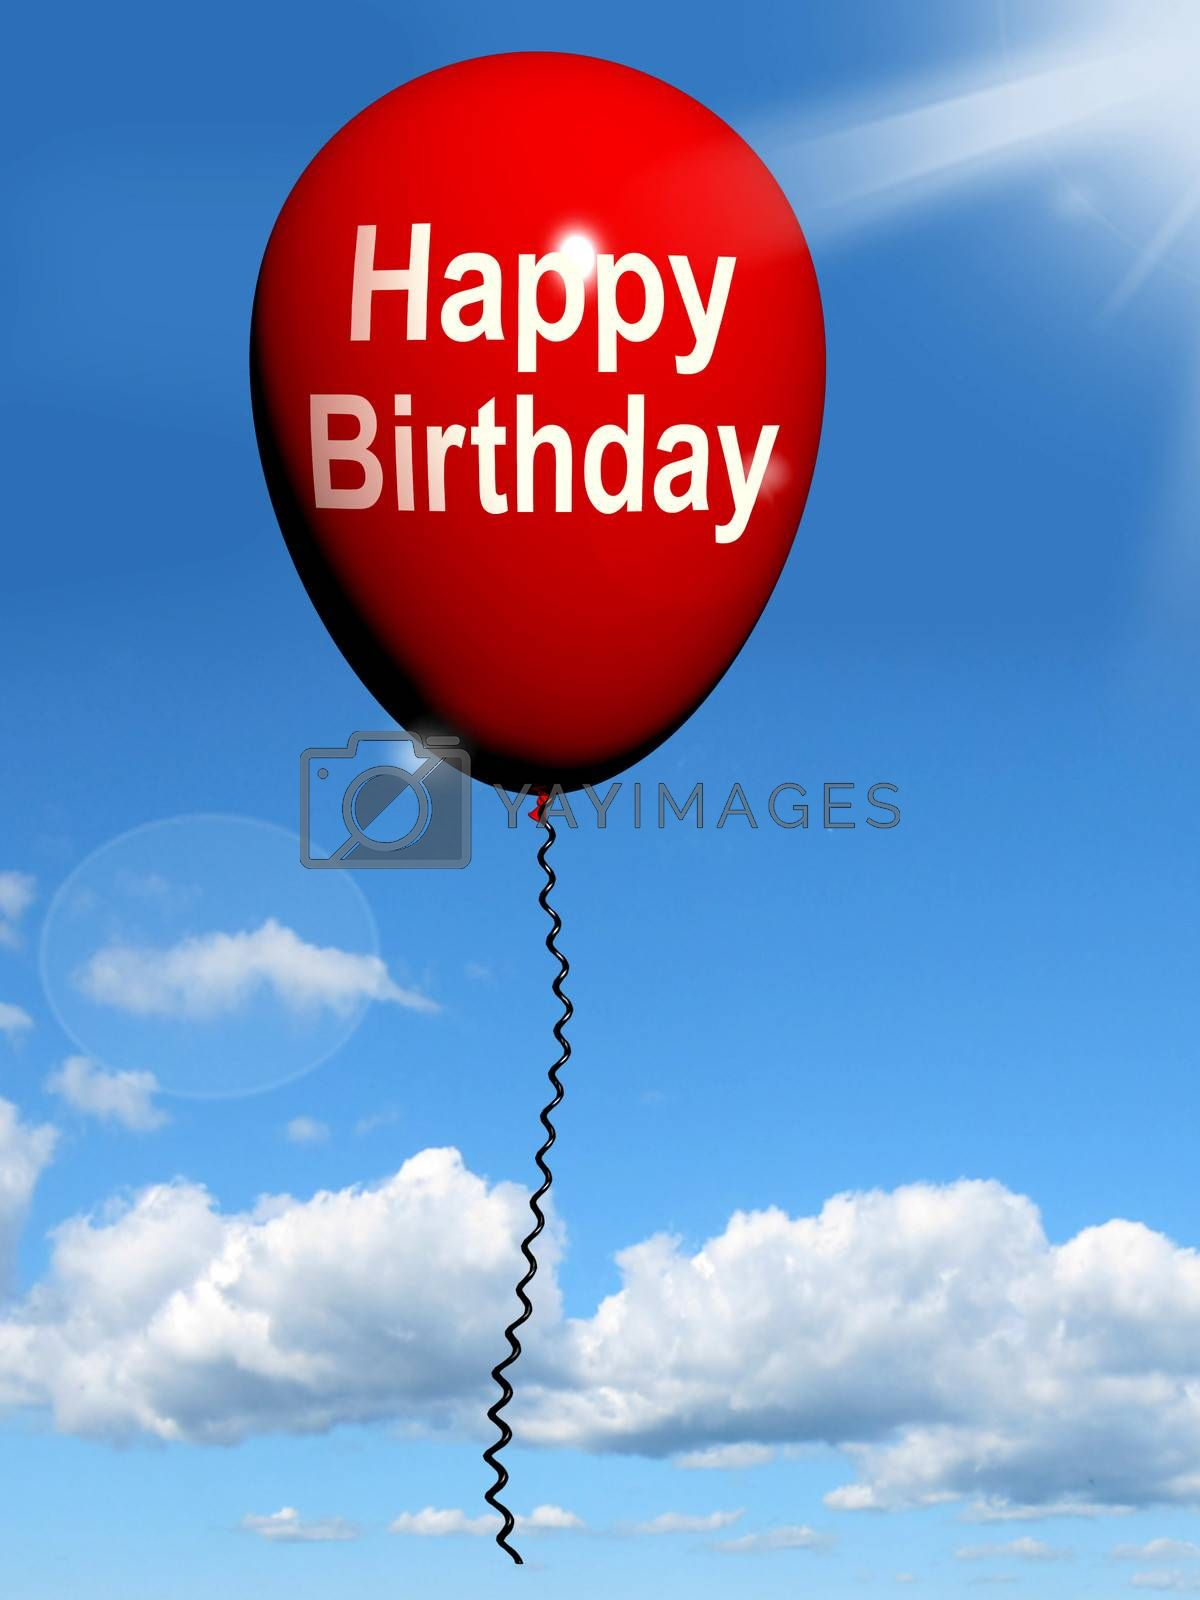 Happy Birthday Balloon Showing Cheerful Festivities and Parties